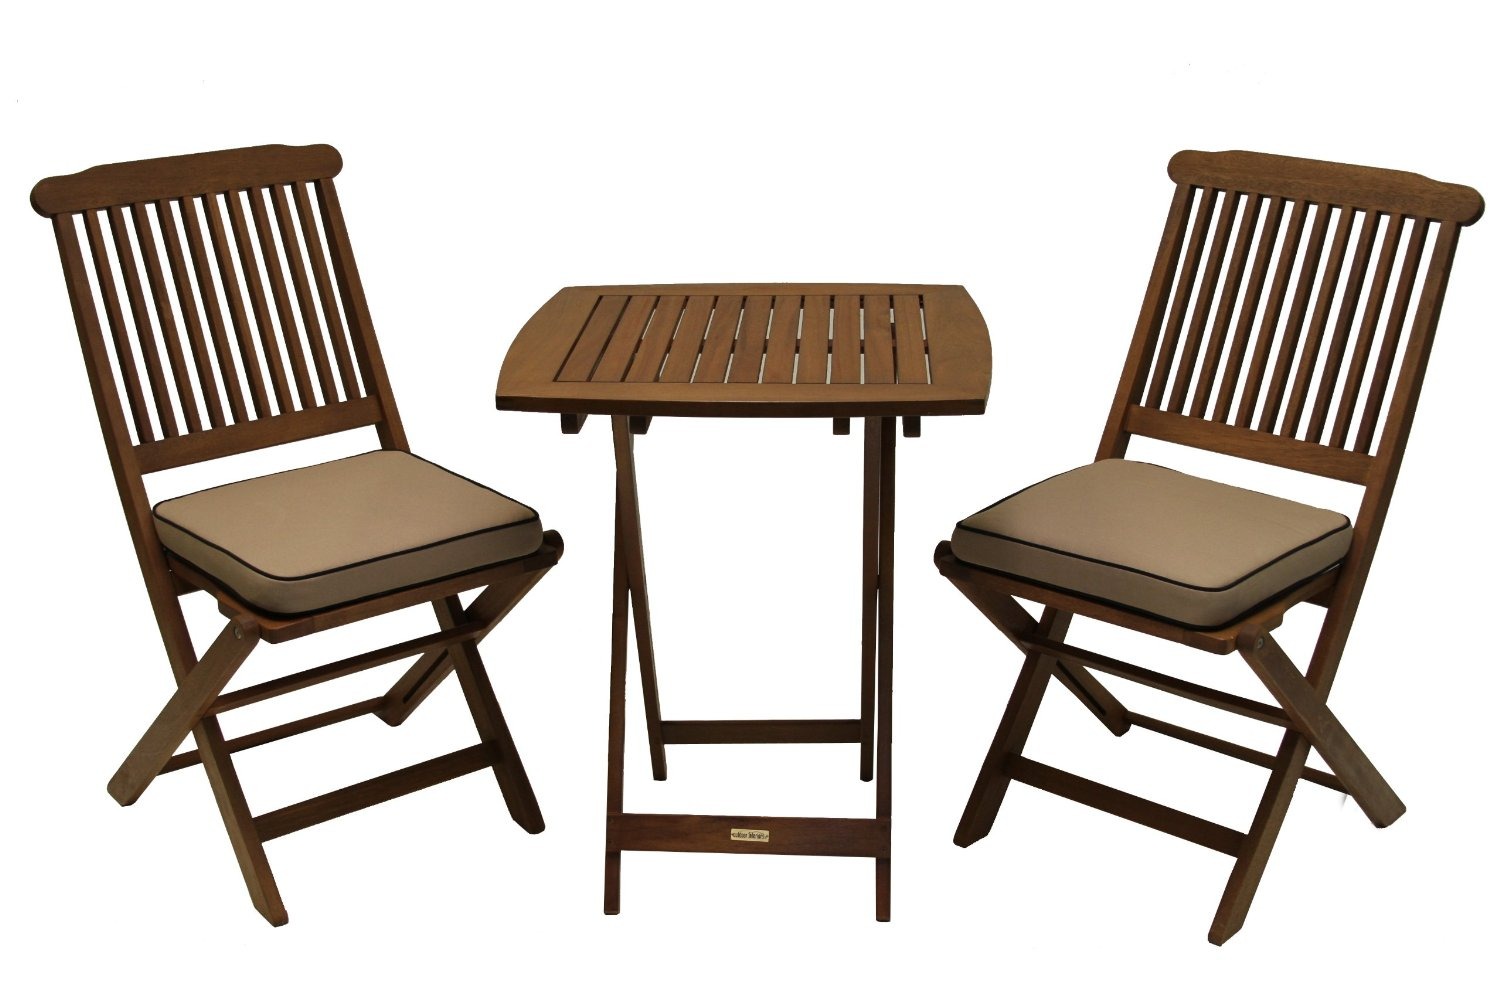 Outdoor Eucalyptus 3 Piece Square Bistro Outdoor Furniture  : OutdoorInteriorsEucalyptus3PieceSquareBistroOutdoorFurnitureSet1 from www.bestpatiofurnituresetsonline.com size 1500 x 1000 jpeg 151kB